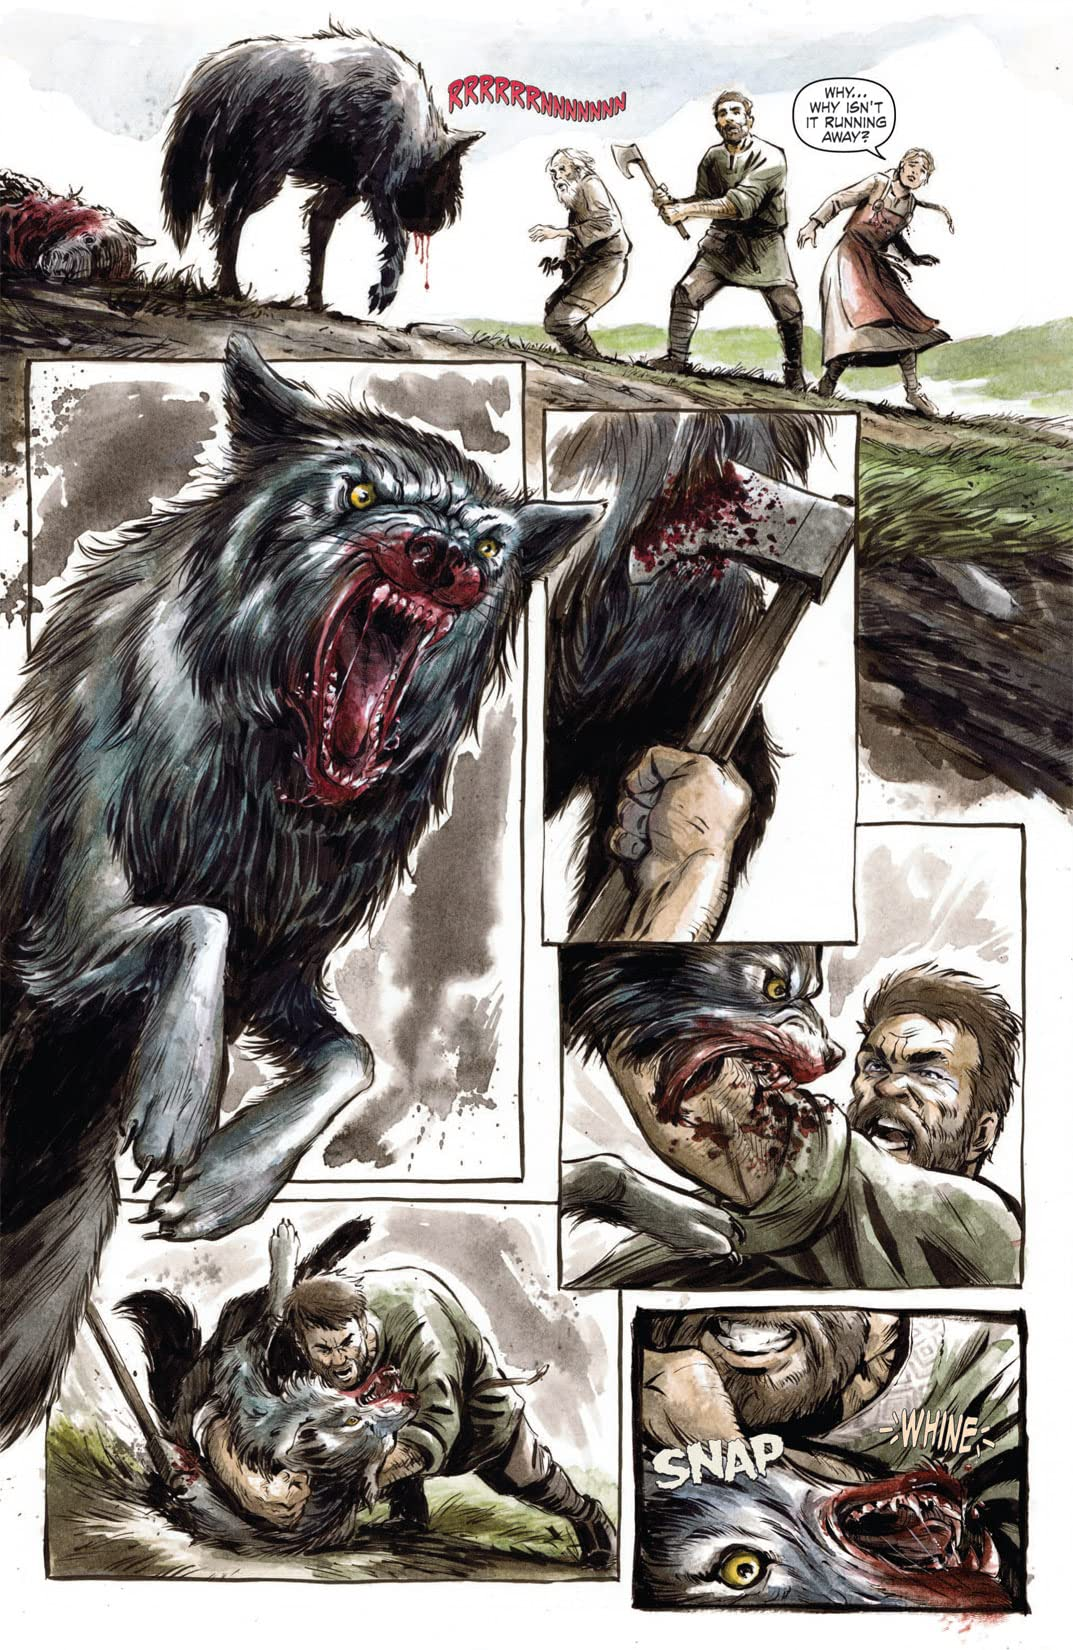 Night of 1,000 Wolves #1 (of 3)